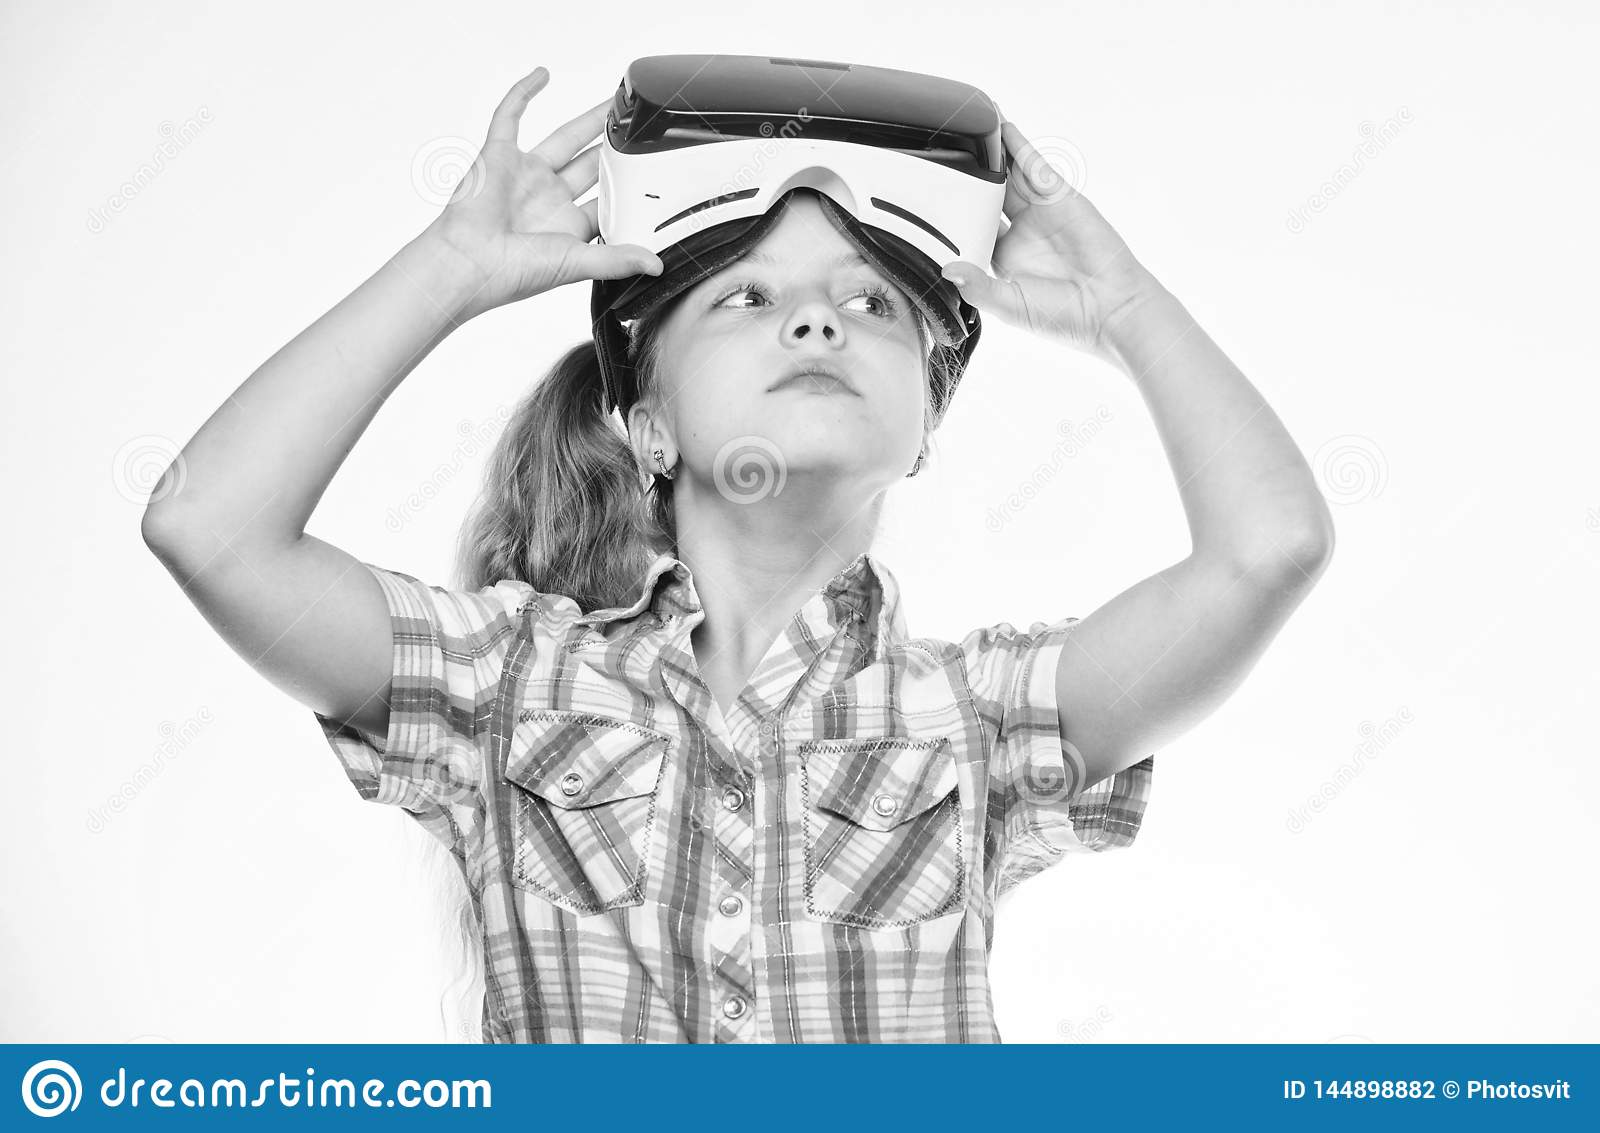 Child play virtual games with modern device. Explore virtual opportunity. Newest kids virtual reality games. Virtual